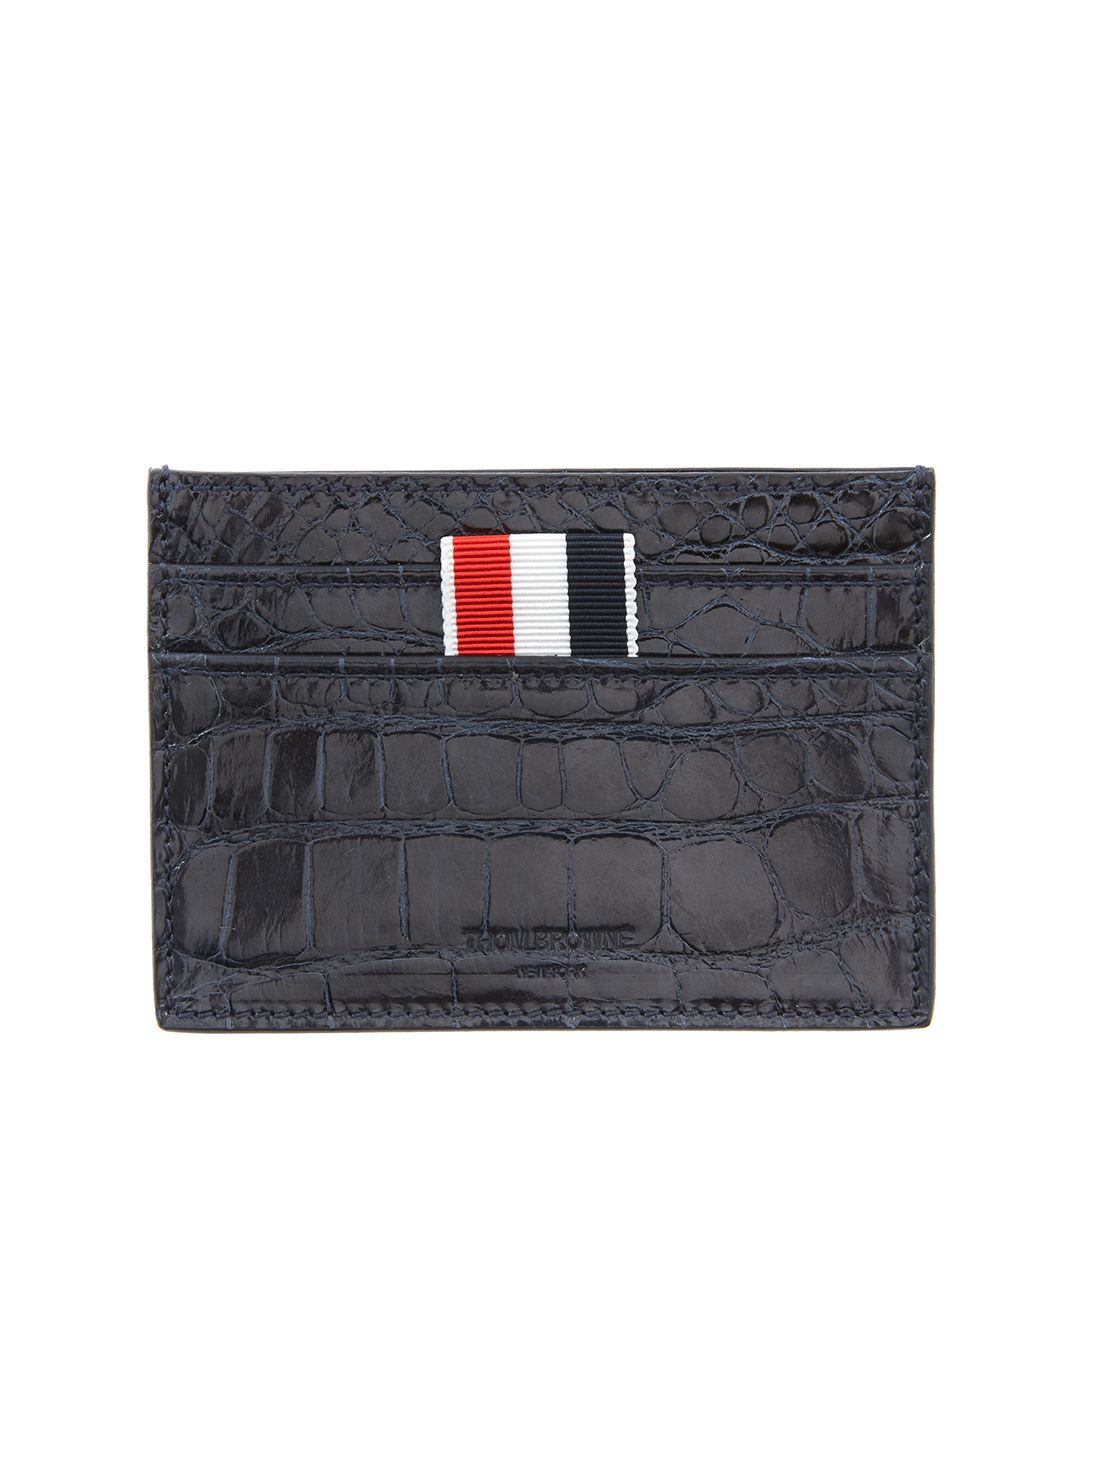 09b2e65c55 Thom Browne   Leather Goods   Credit Card Holder In Navy Alligator ...